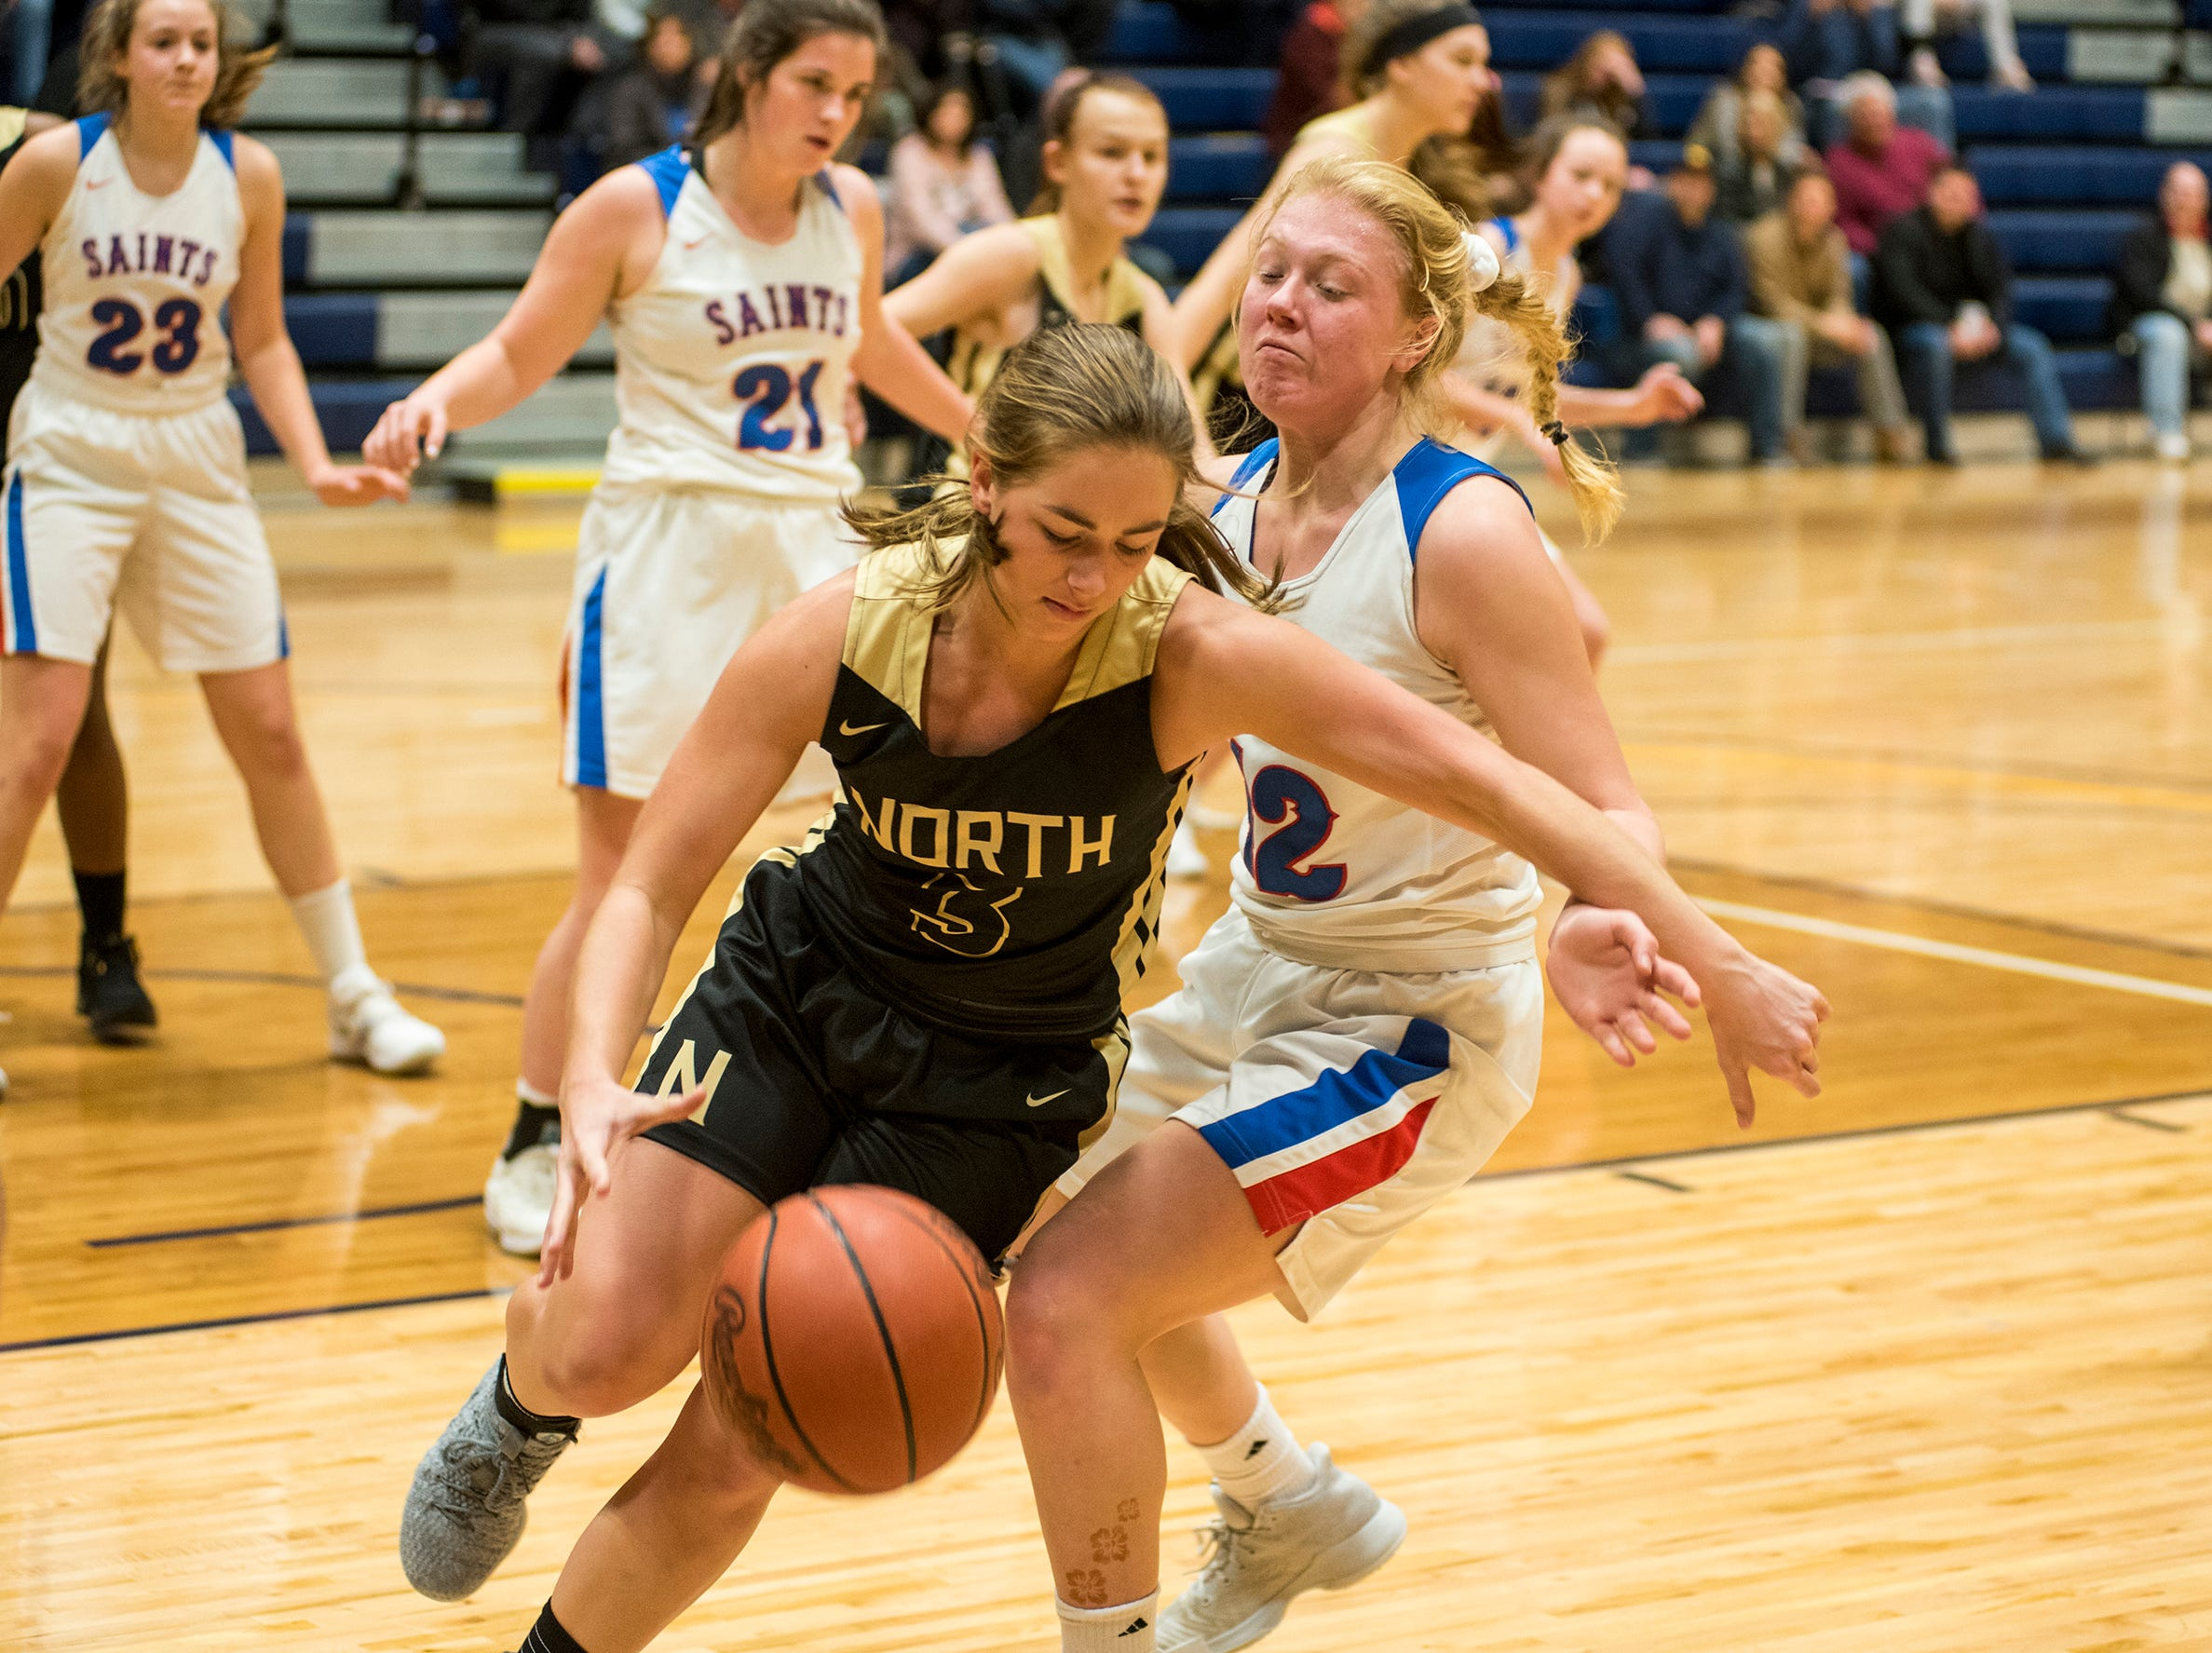 L'Anse Creuse North High School guard Alexandra Lavey (3) pushes around St. Clair High School forward Kra Donaldson during their SC4 Holiday Basketball Showcase game Thursday, Dec. 27, 2018 at the SC4 Fieldhouse.